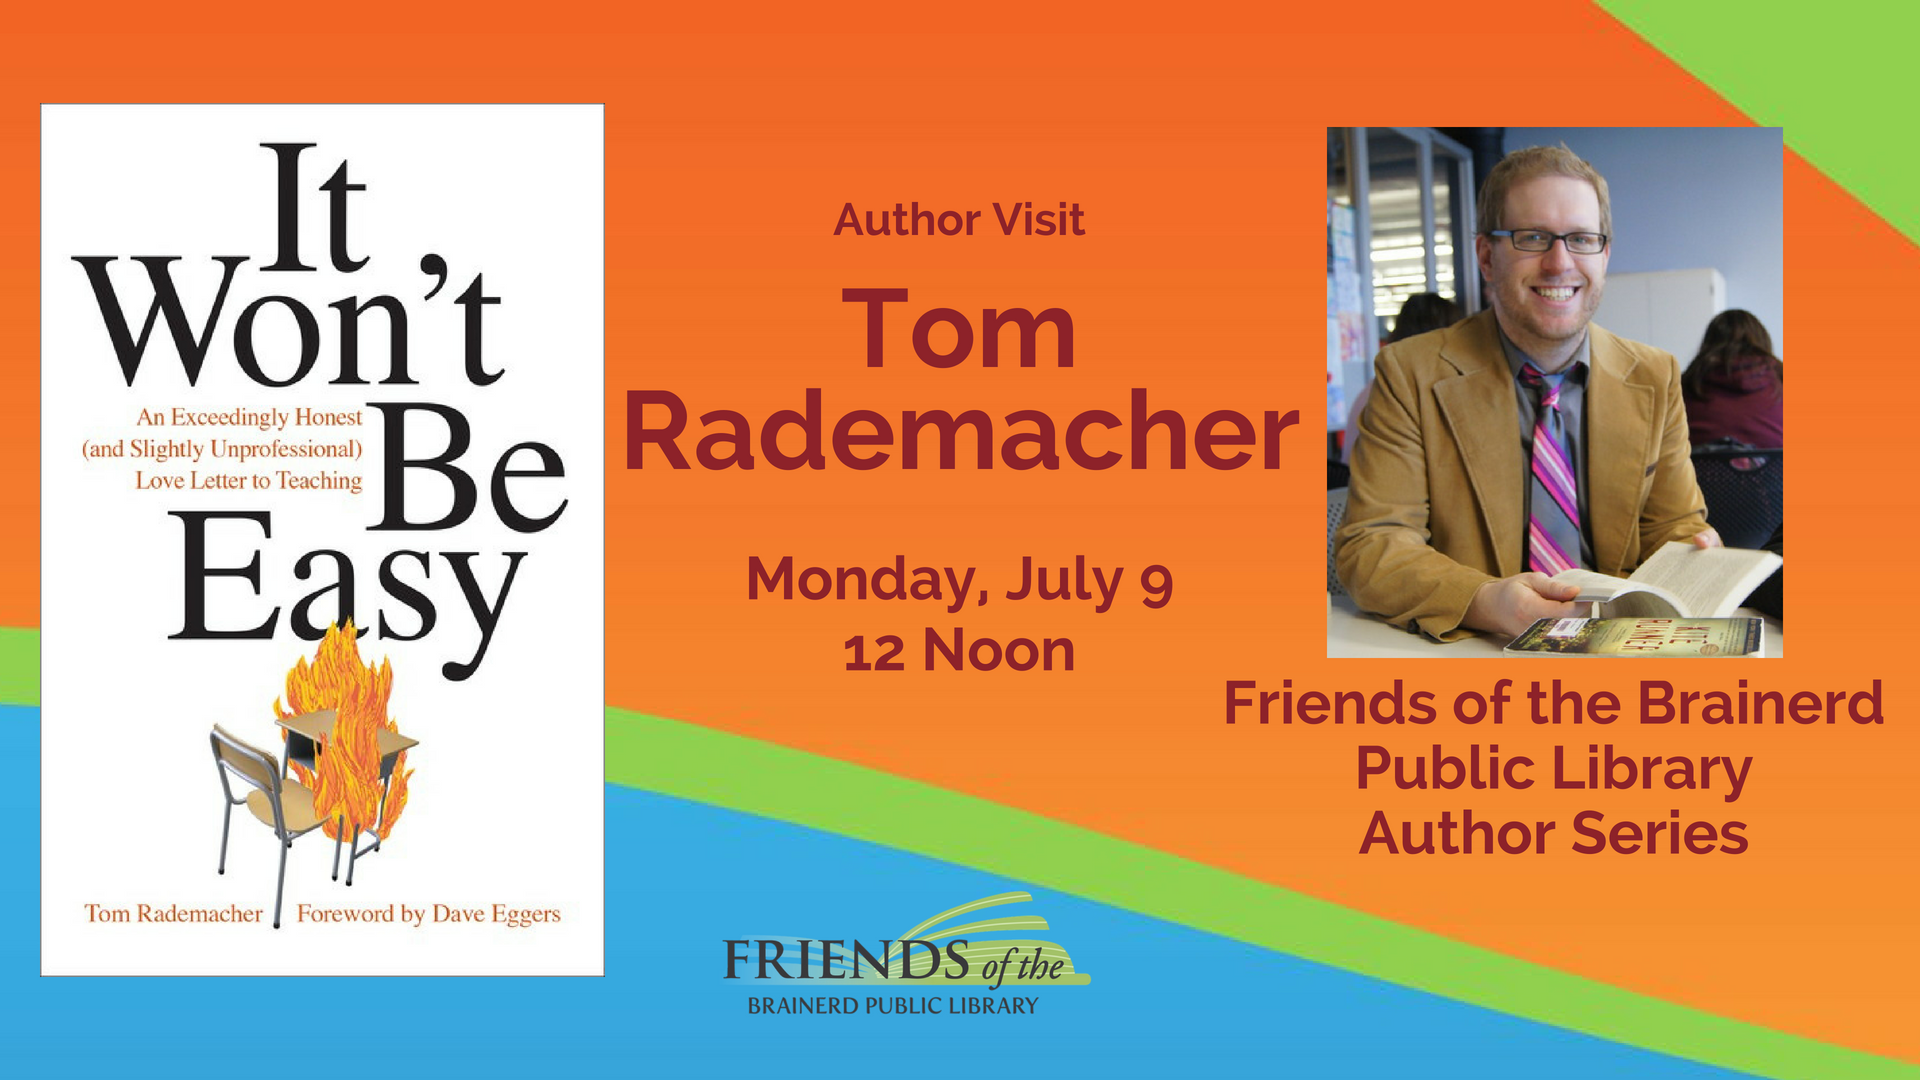 Brown Bag Author Visit: Tom Rademacher